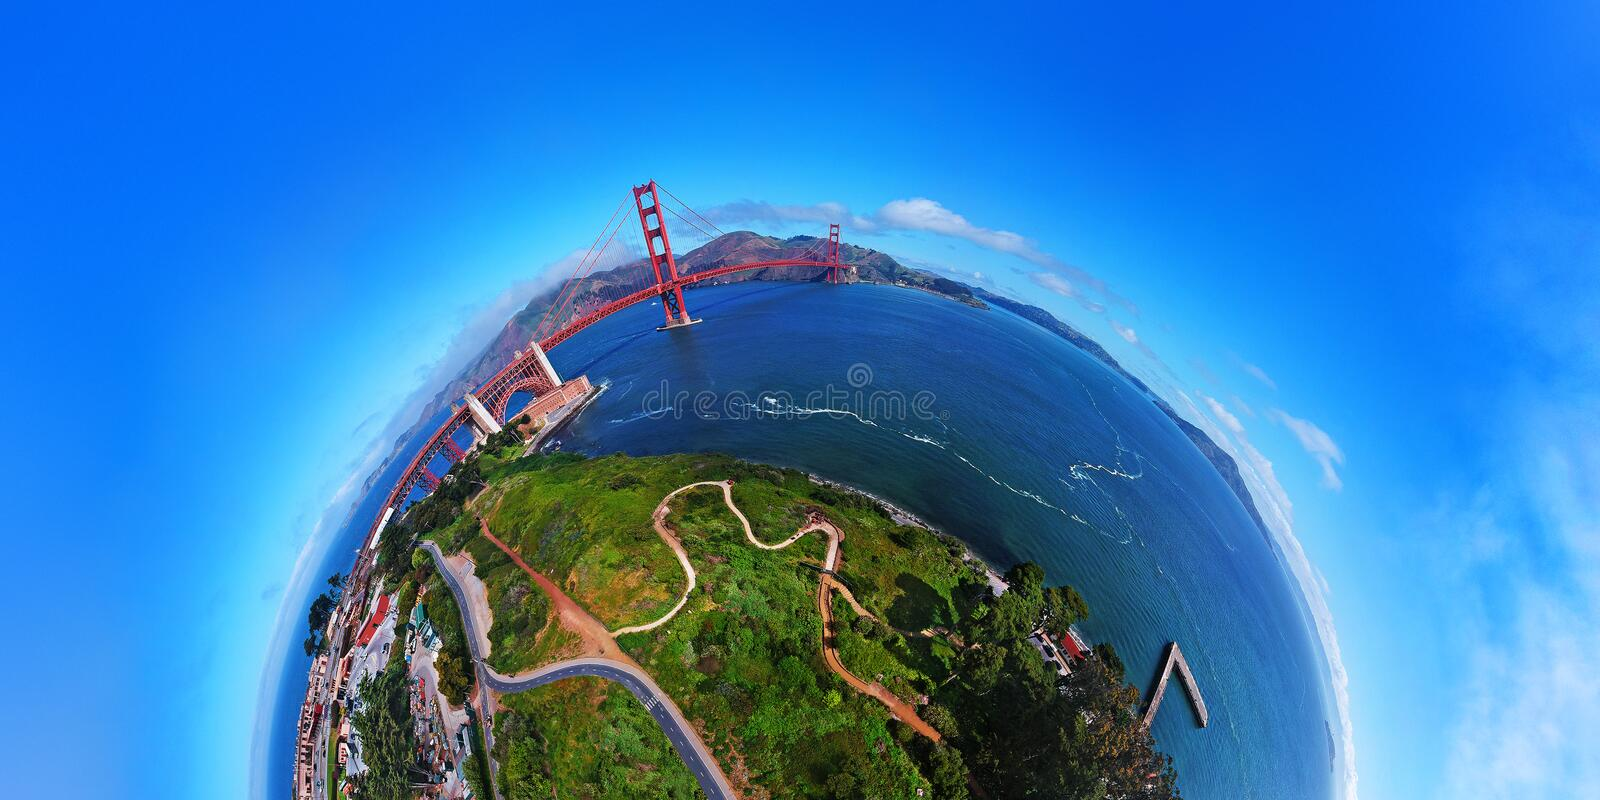 Luchtmening van Golden gate bridge in San Francisco, Californië HOMMELschot, PLANEETpanorama 180 GRADEN stock afbeeldingen